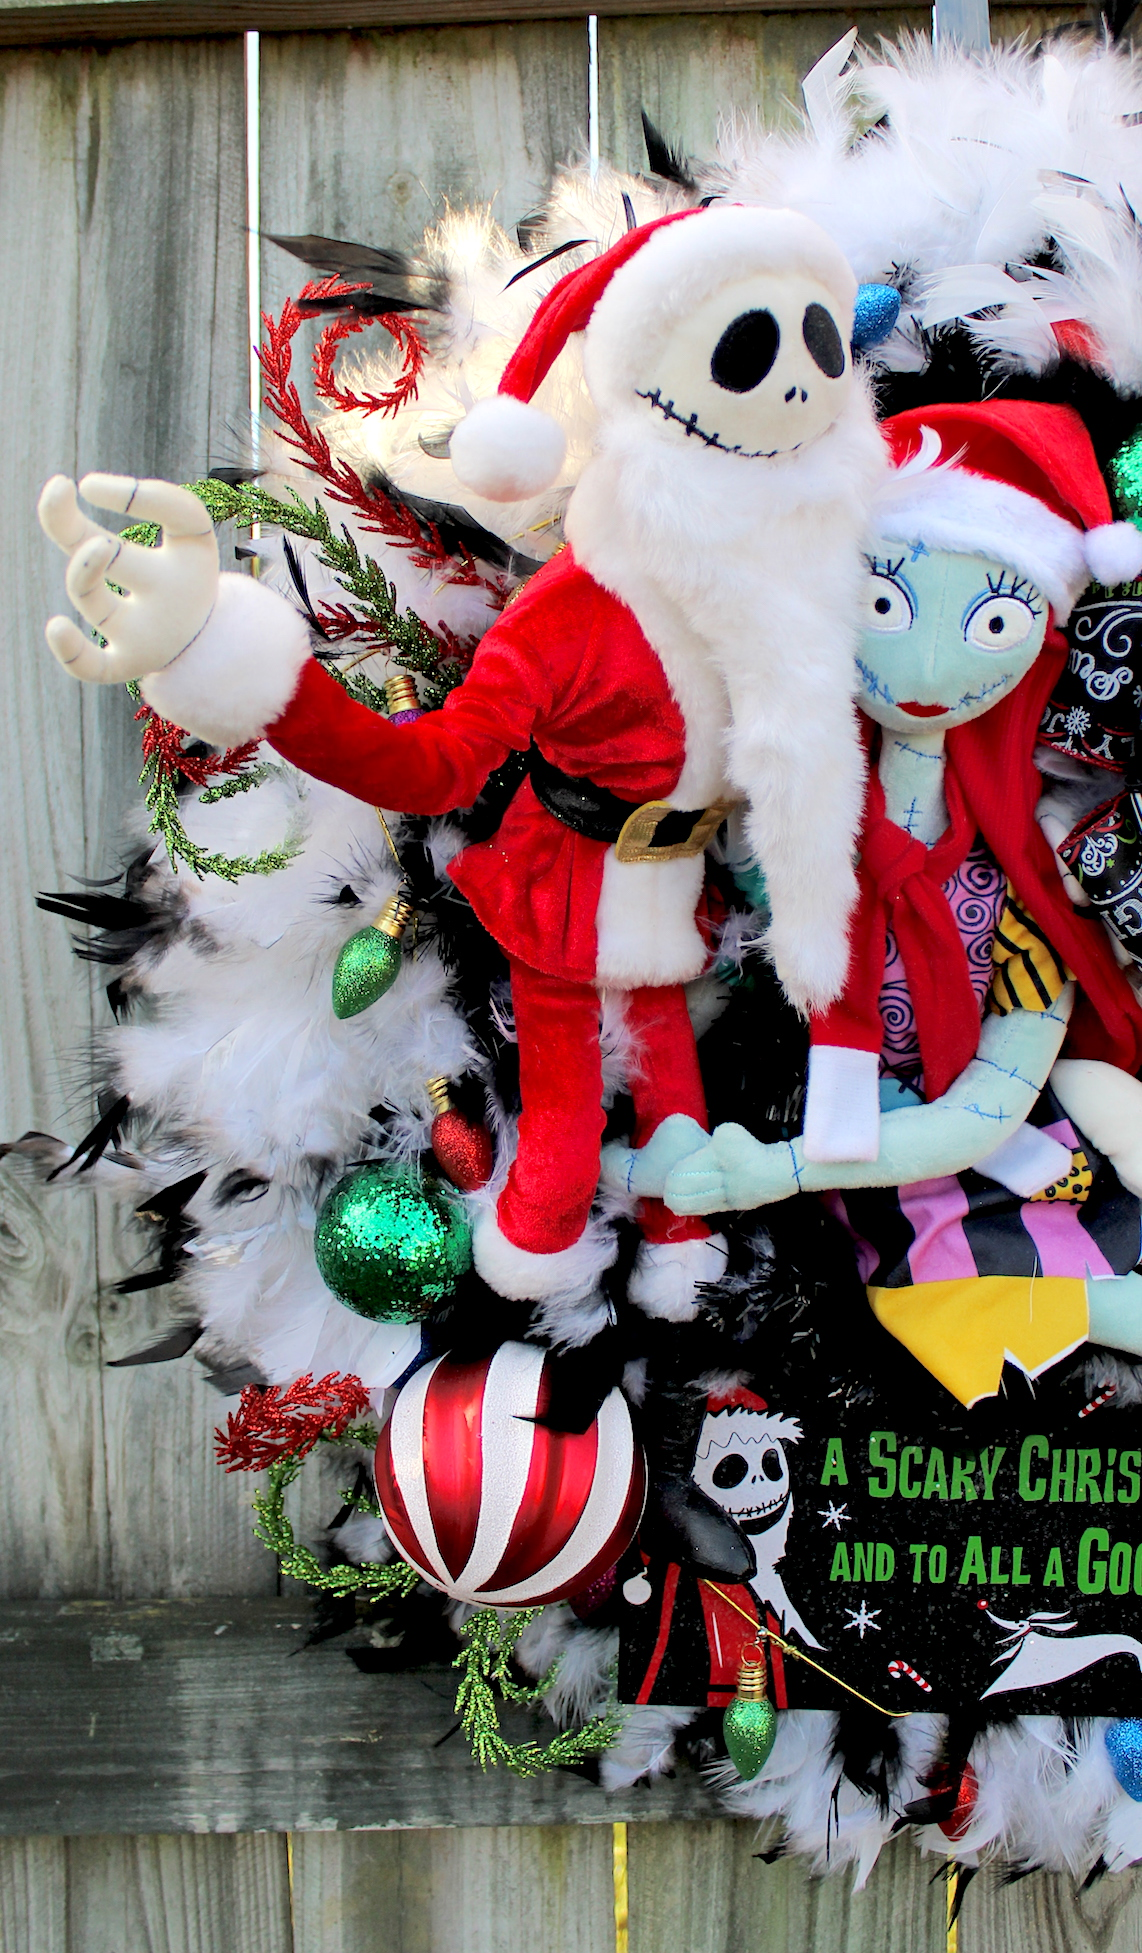 jack skellington here in his sandy claws suit with his true love sally and trusty reindeer ghost dog zero wishing everyone a scary christmas to all and - Jack Skellington Christmas Tree